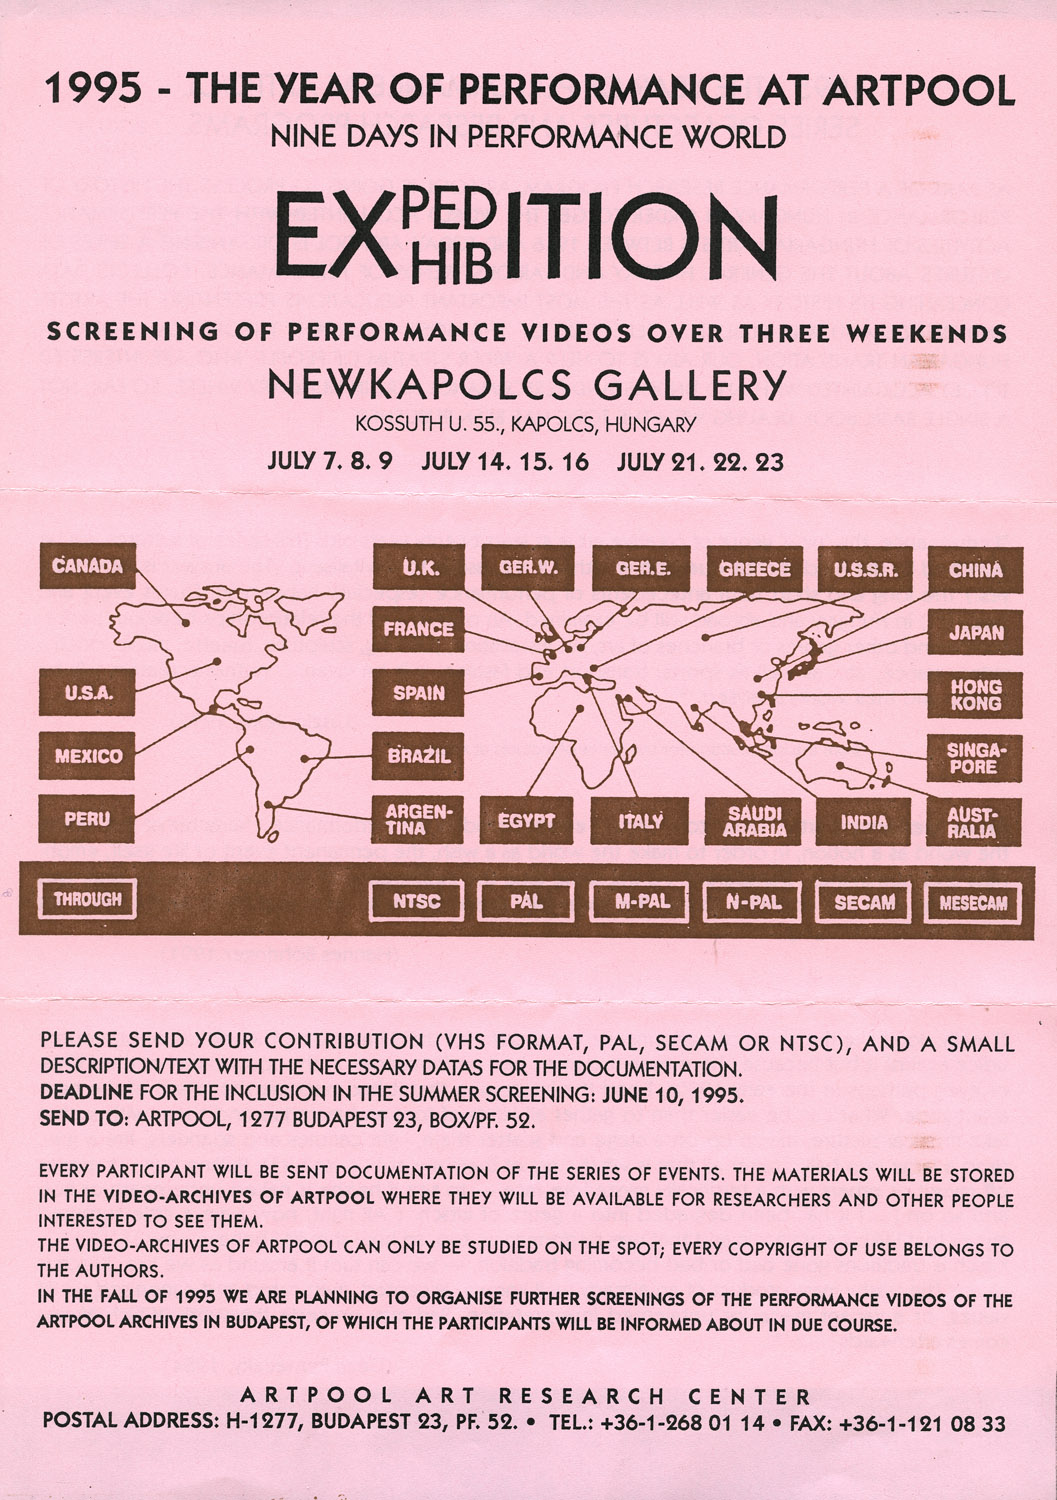 Call for participation in the screening of performance videos at NewKapolcs Gallery, Kapolcs, Summer 1995 (first and second page)